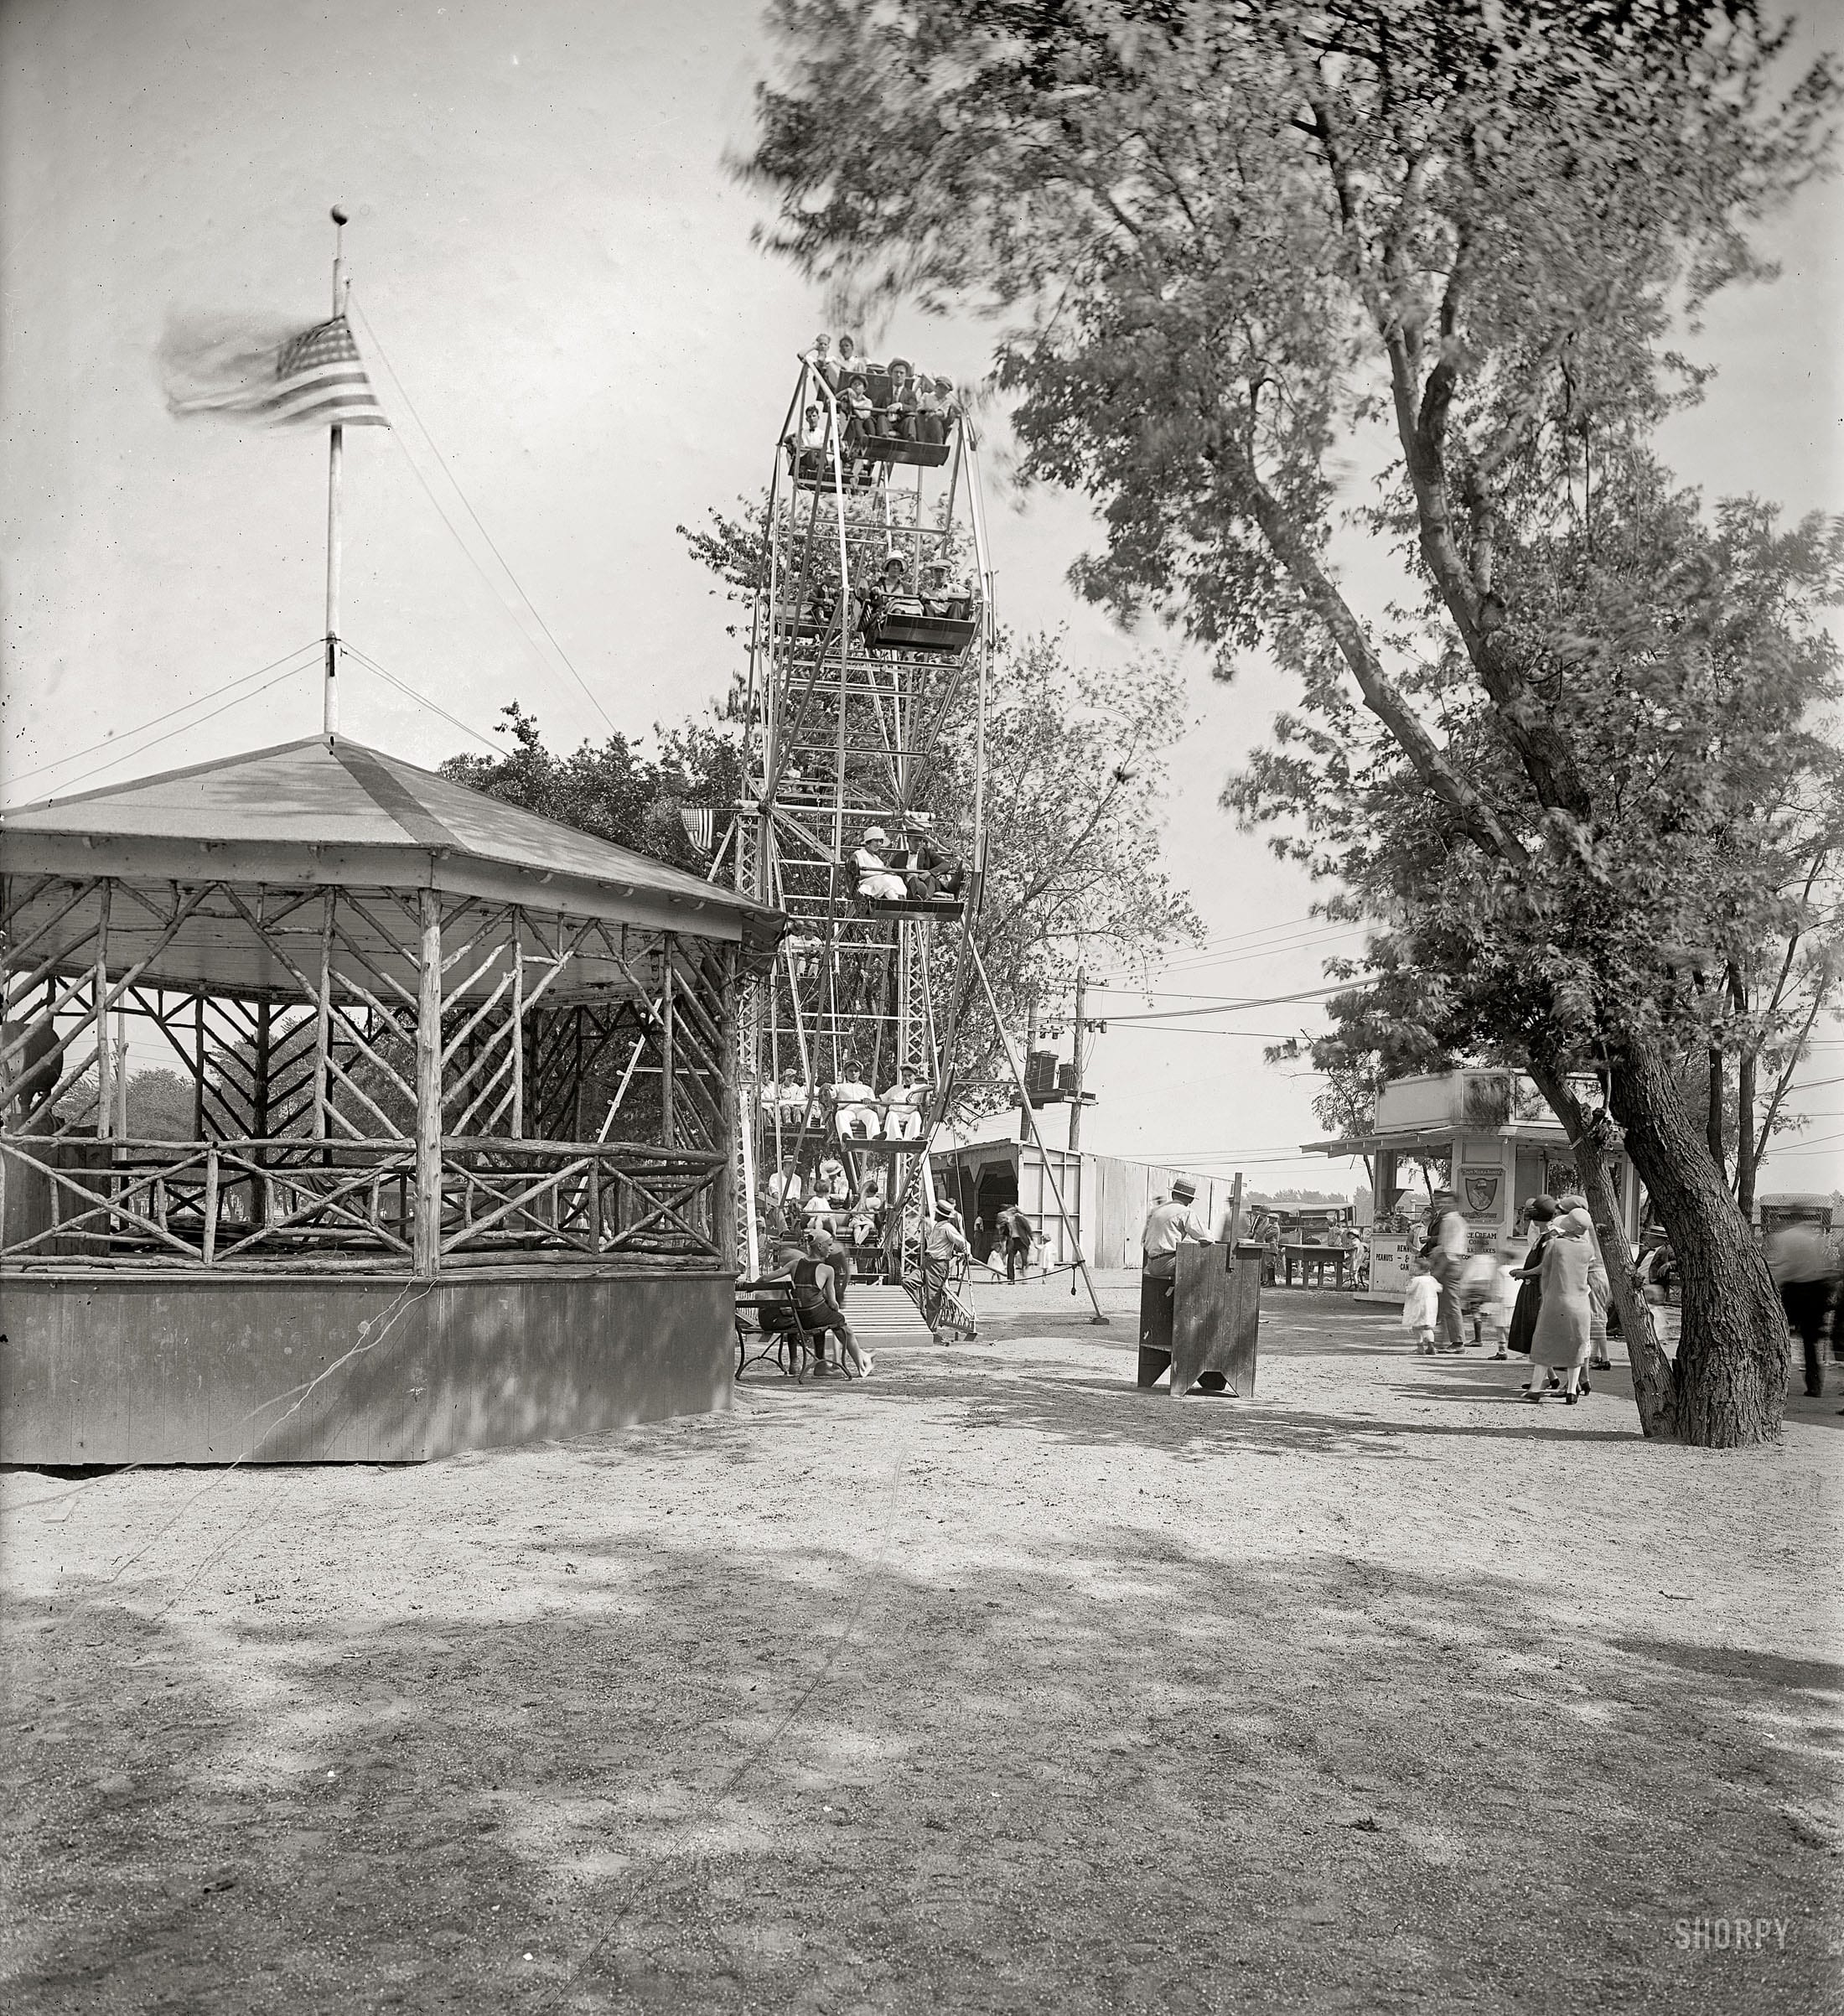 """Circa 1925. """"Arlington Beach."""" An amusement park in the general vicinity of today's Pentagon, removed in 1929 to make way for an airport expansion. National Photo Company Collection glass negative."""